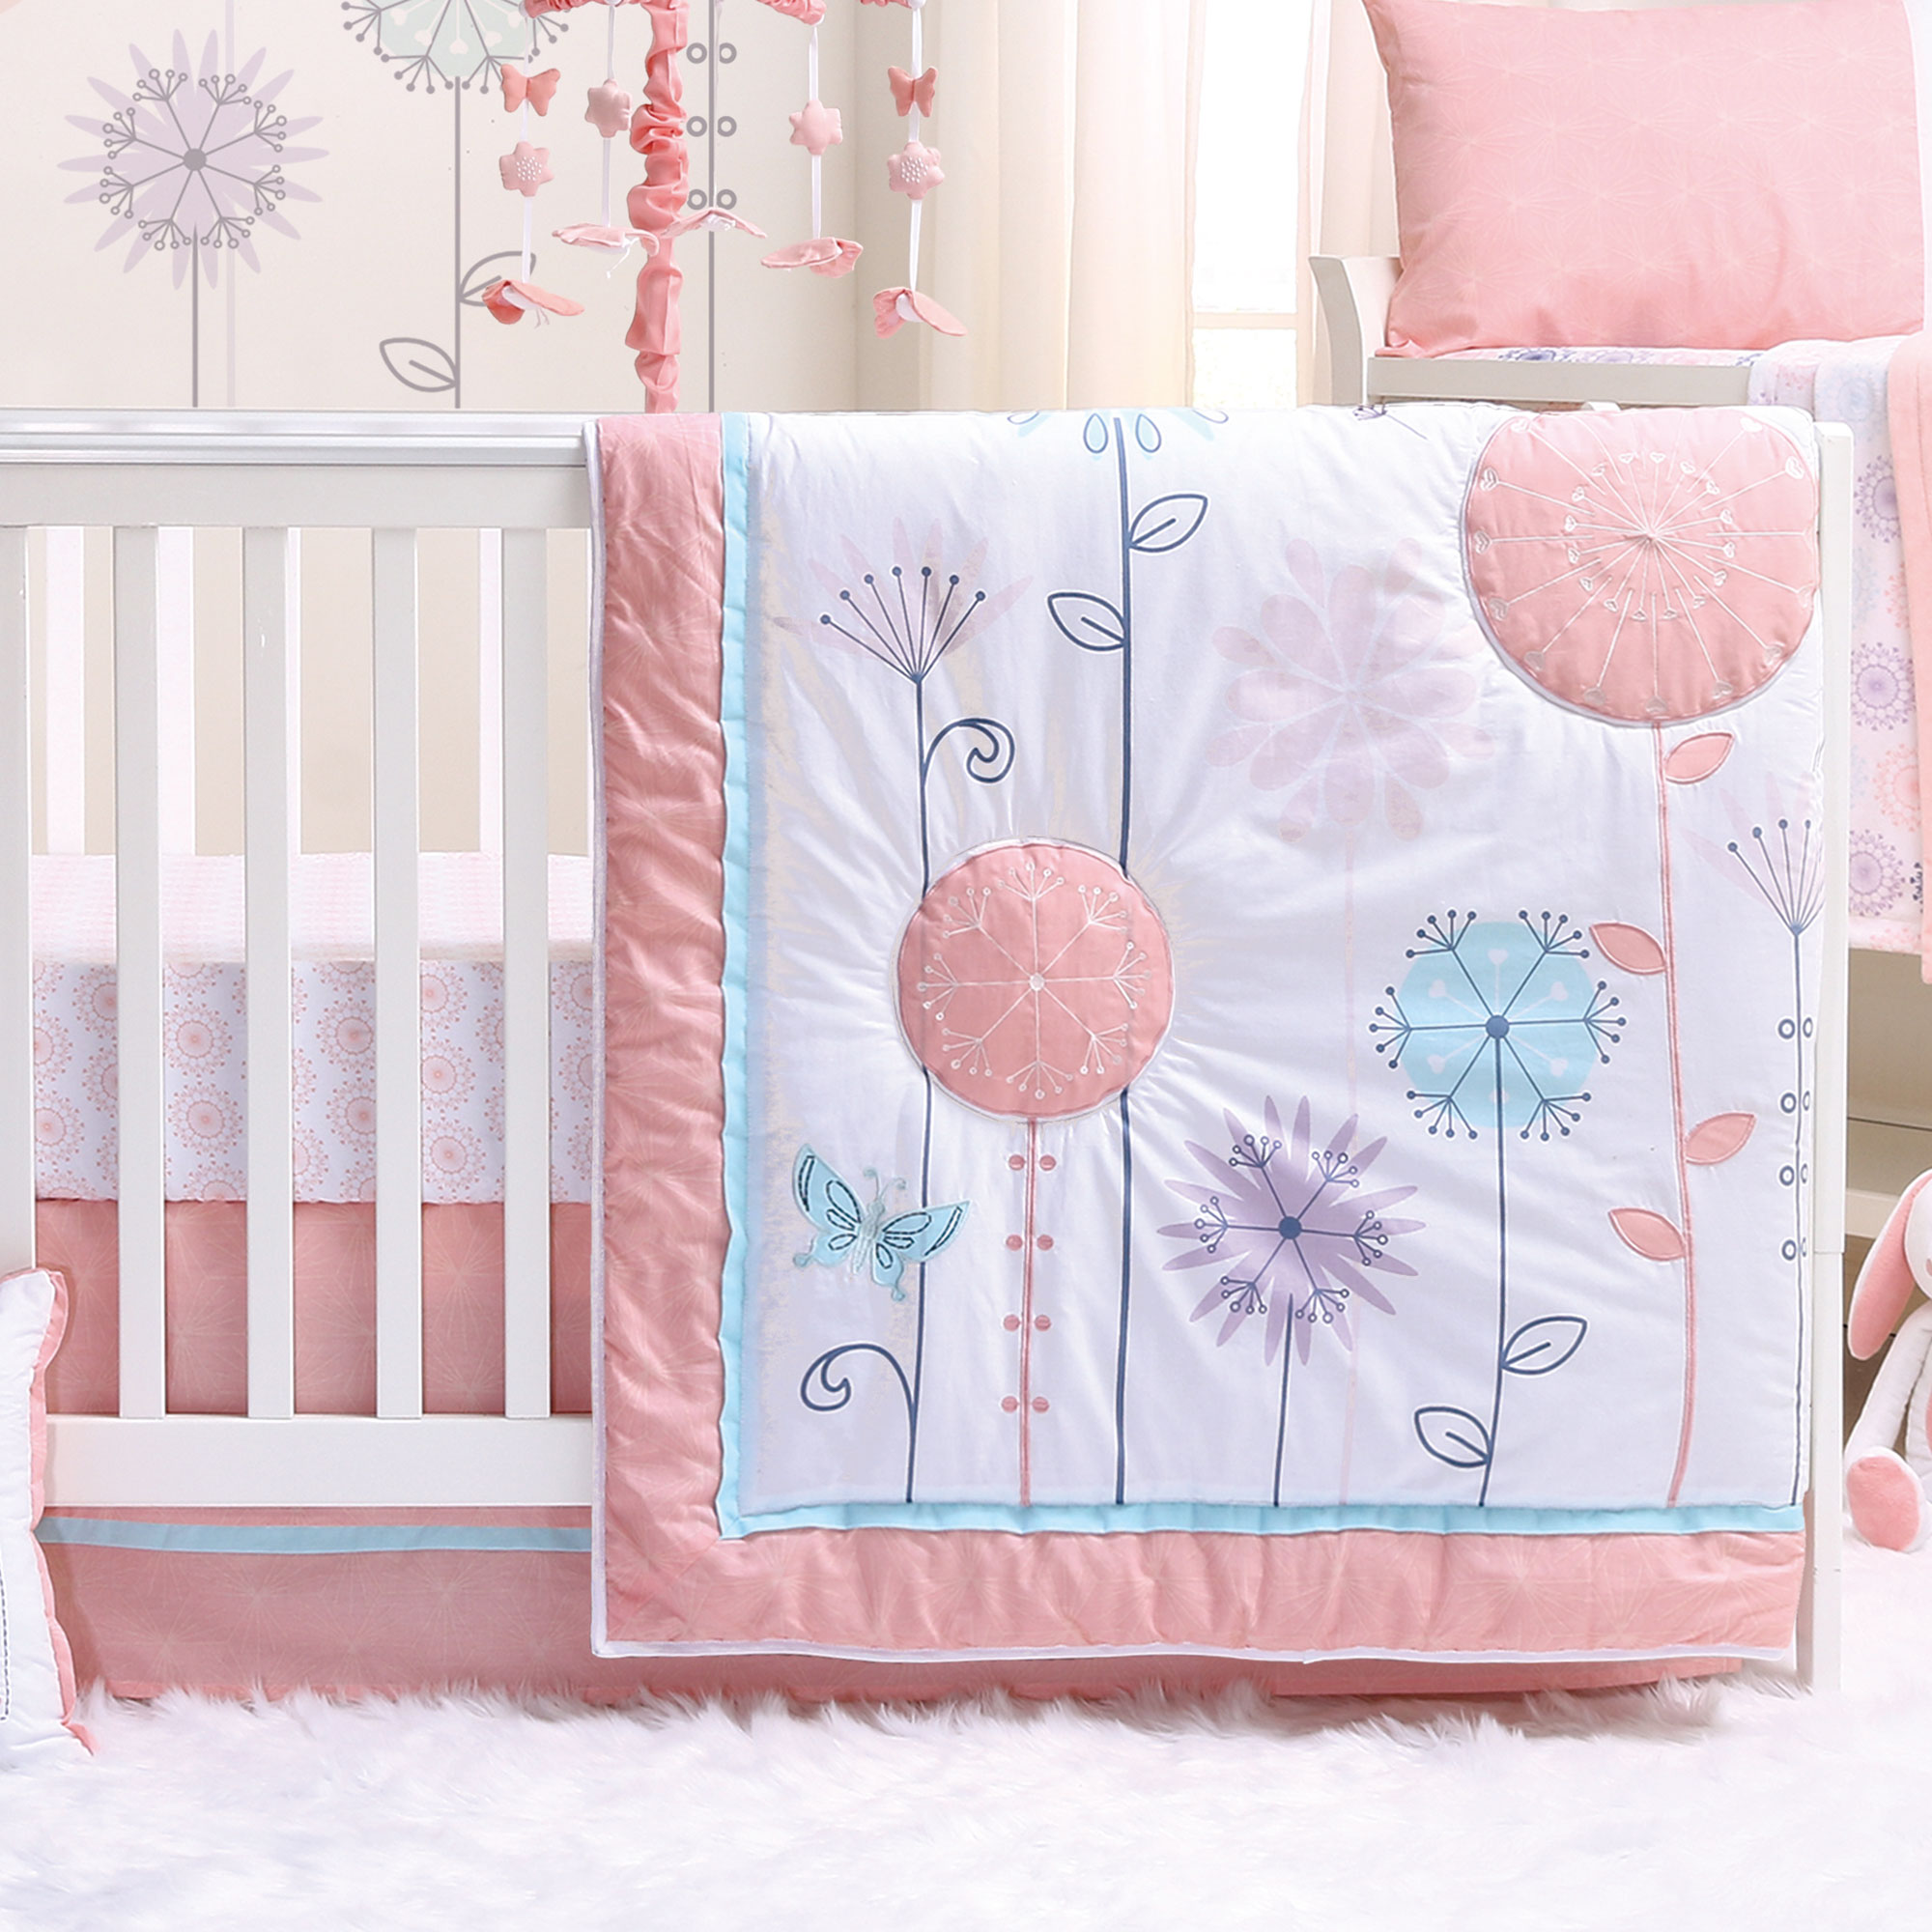 Wildflower 4 Piece Baby Crib Bedding Set - Coral, Purple - Floral, Butterfly